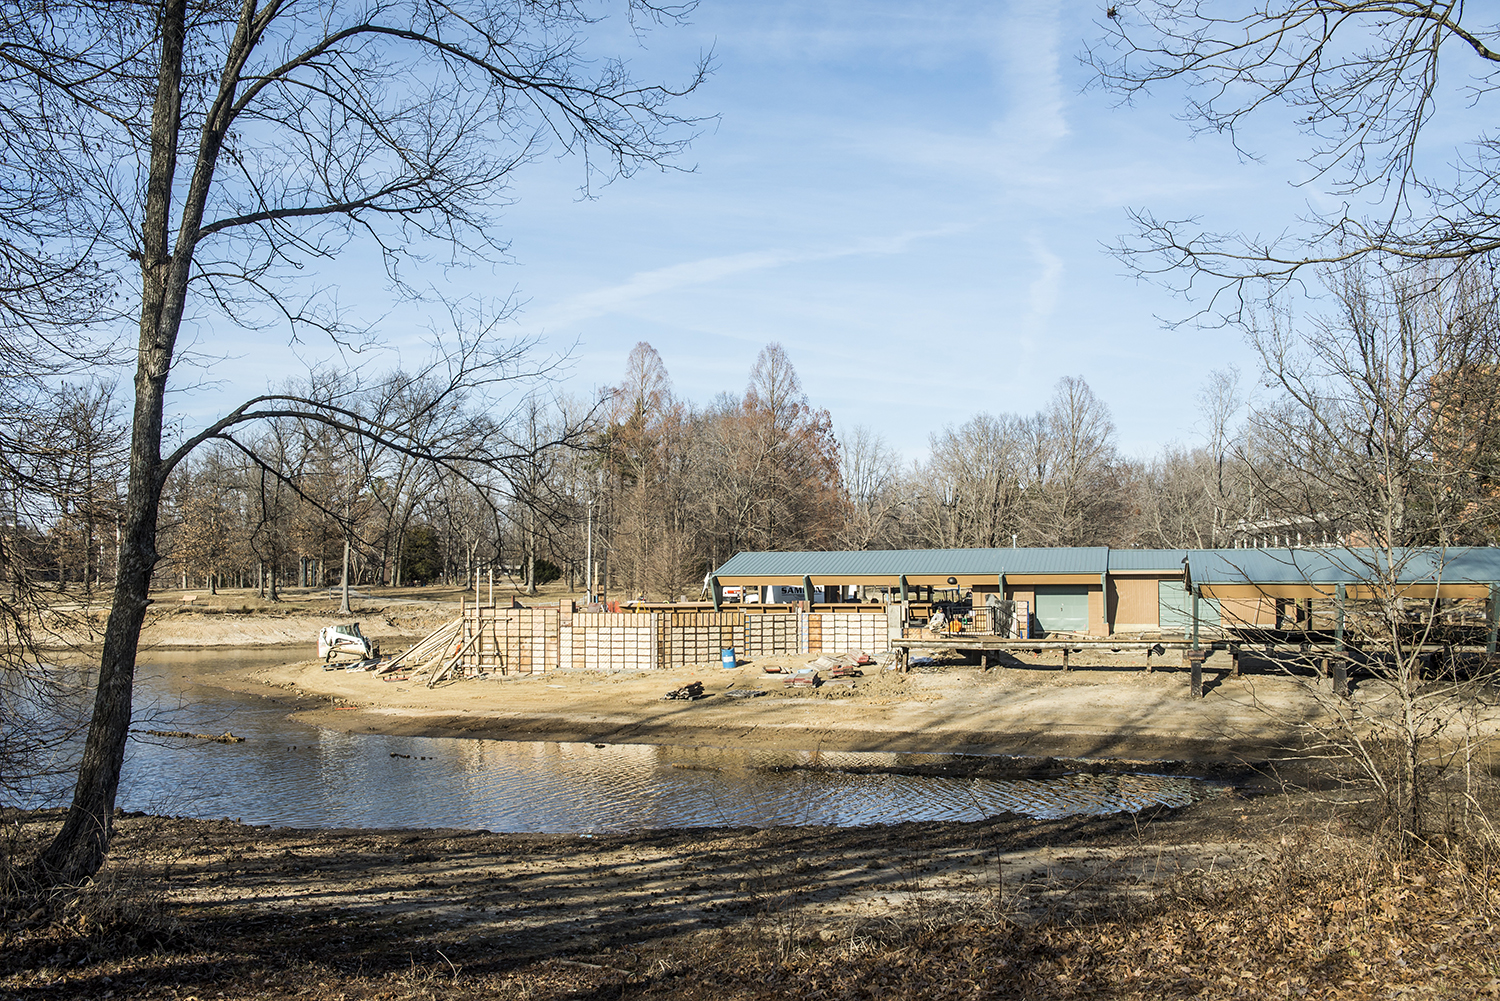 Ralph E. Becker Boat Dock And Pavilion Expected To Be Ready By Spring